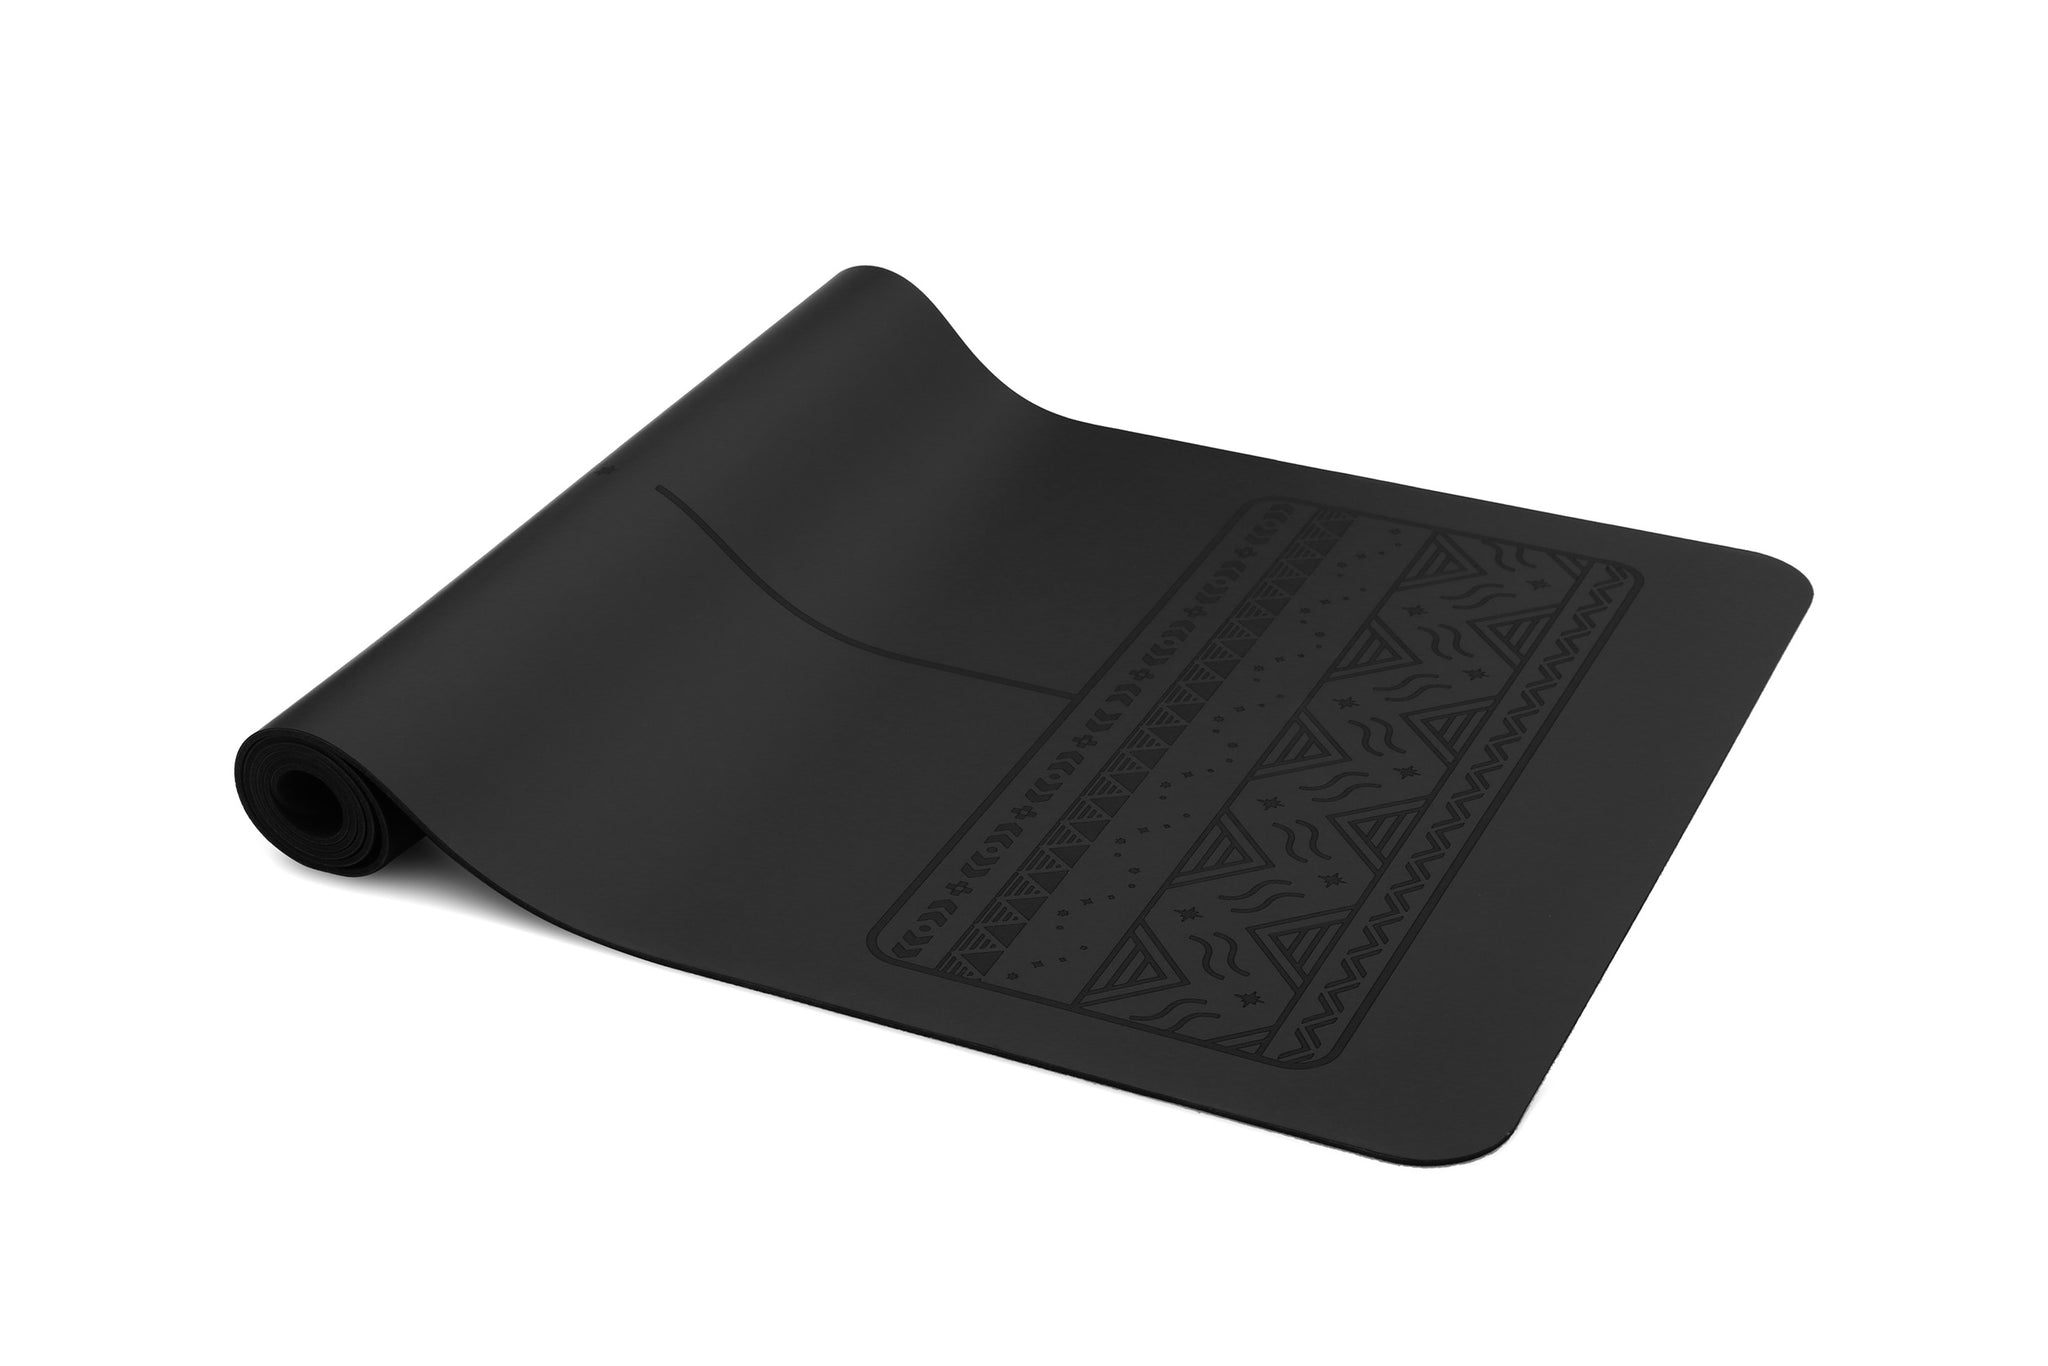 Paws - Natural rubber extreme grip yoga mat black